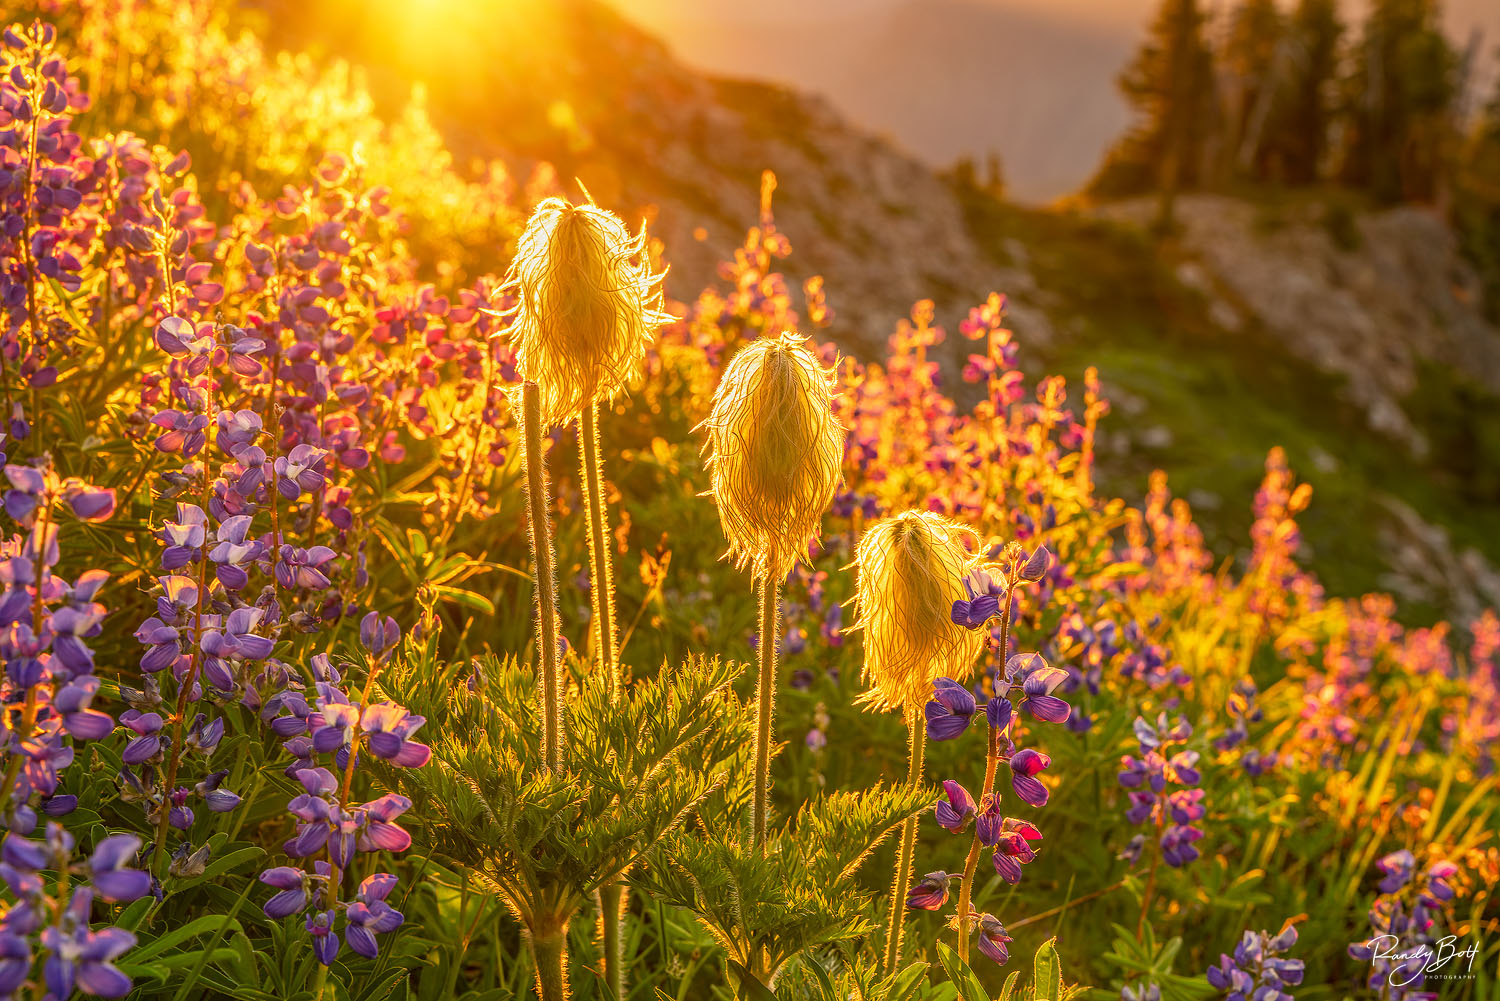 western anemone glowing the sunlight at sunset in mount rainier national park.